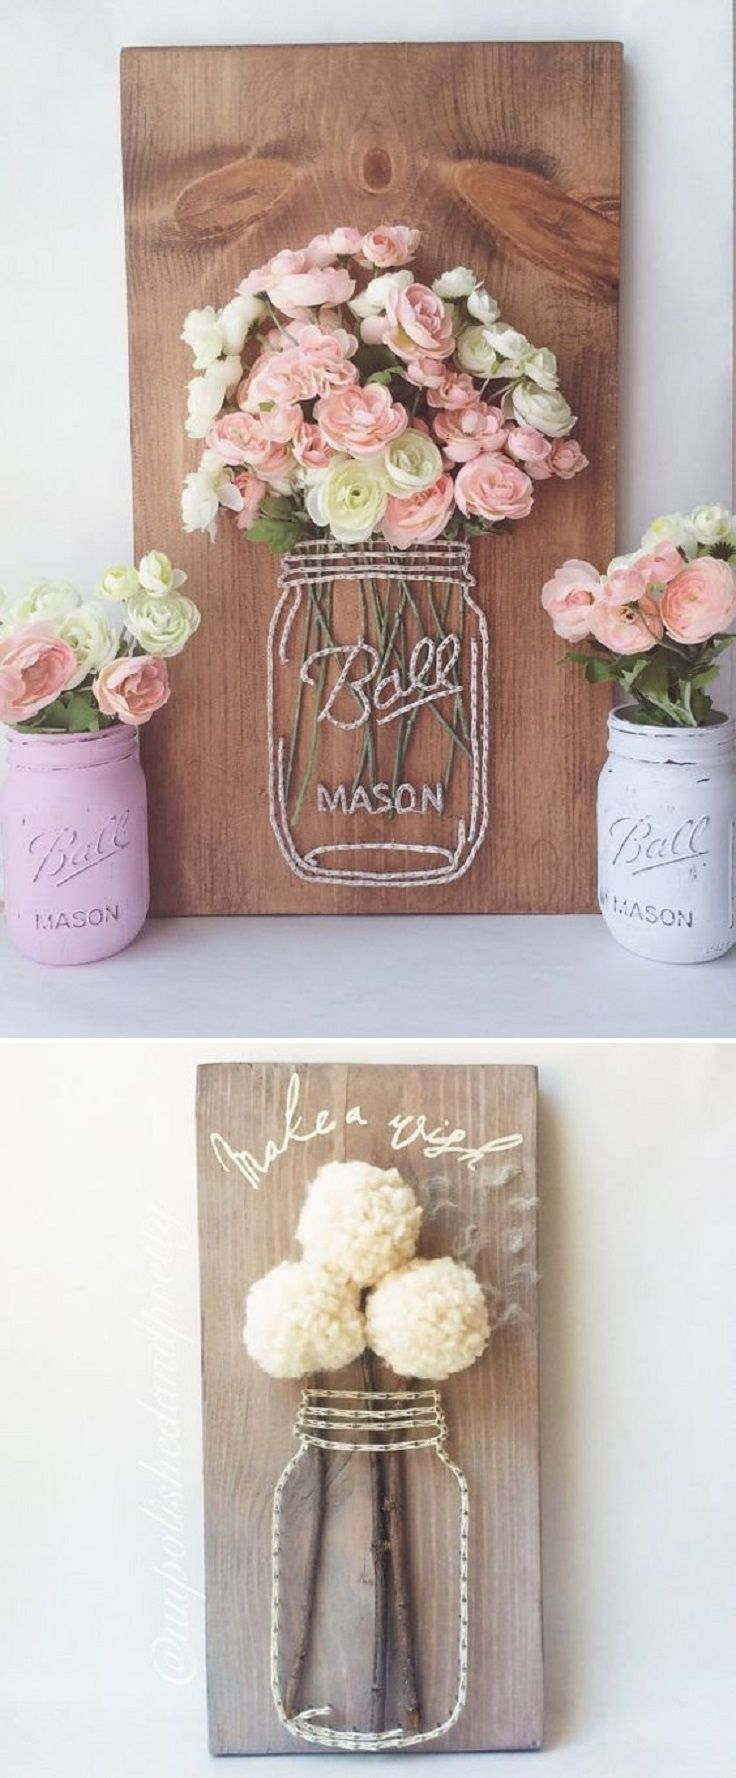 Craft a Mason Jar String Art with Wood, Yarn and Faux Flowers - 16 Picture Perfect Spring Decorations to Celebrate the Blissful Season #stringart